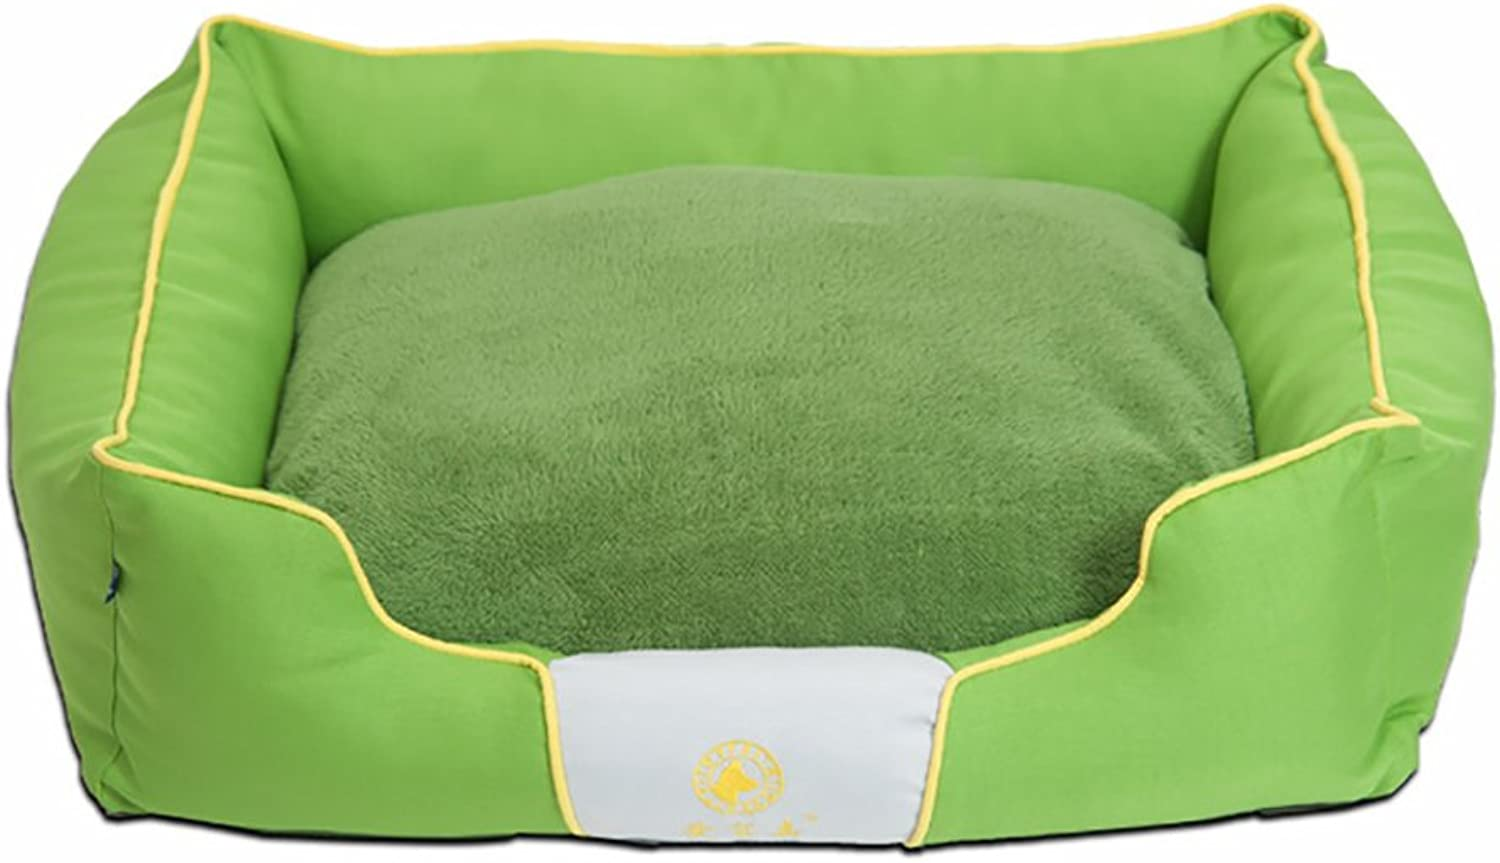 Dogs Bed House Cat Nest mattress cushion Sleeping Bag Small Dogs Best Pet Supplies Full Removable Wash Four Seasons Universal (color   GREEN, Size   L)